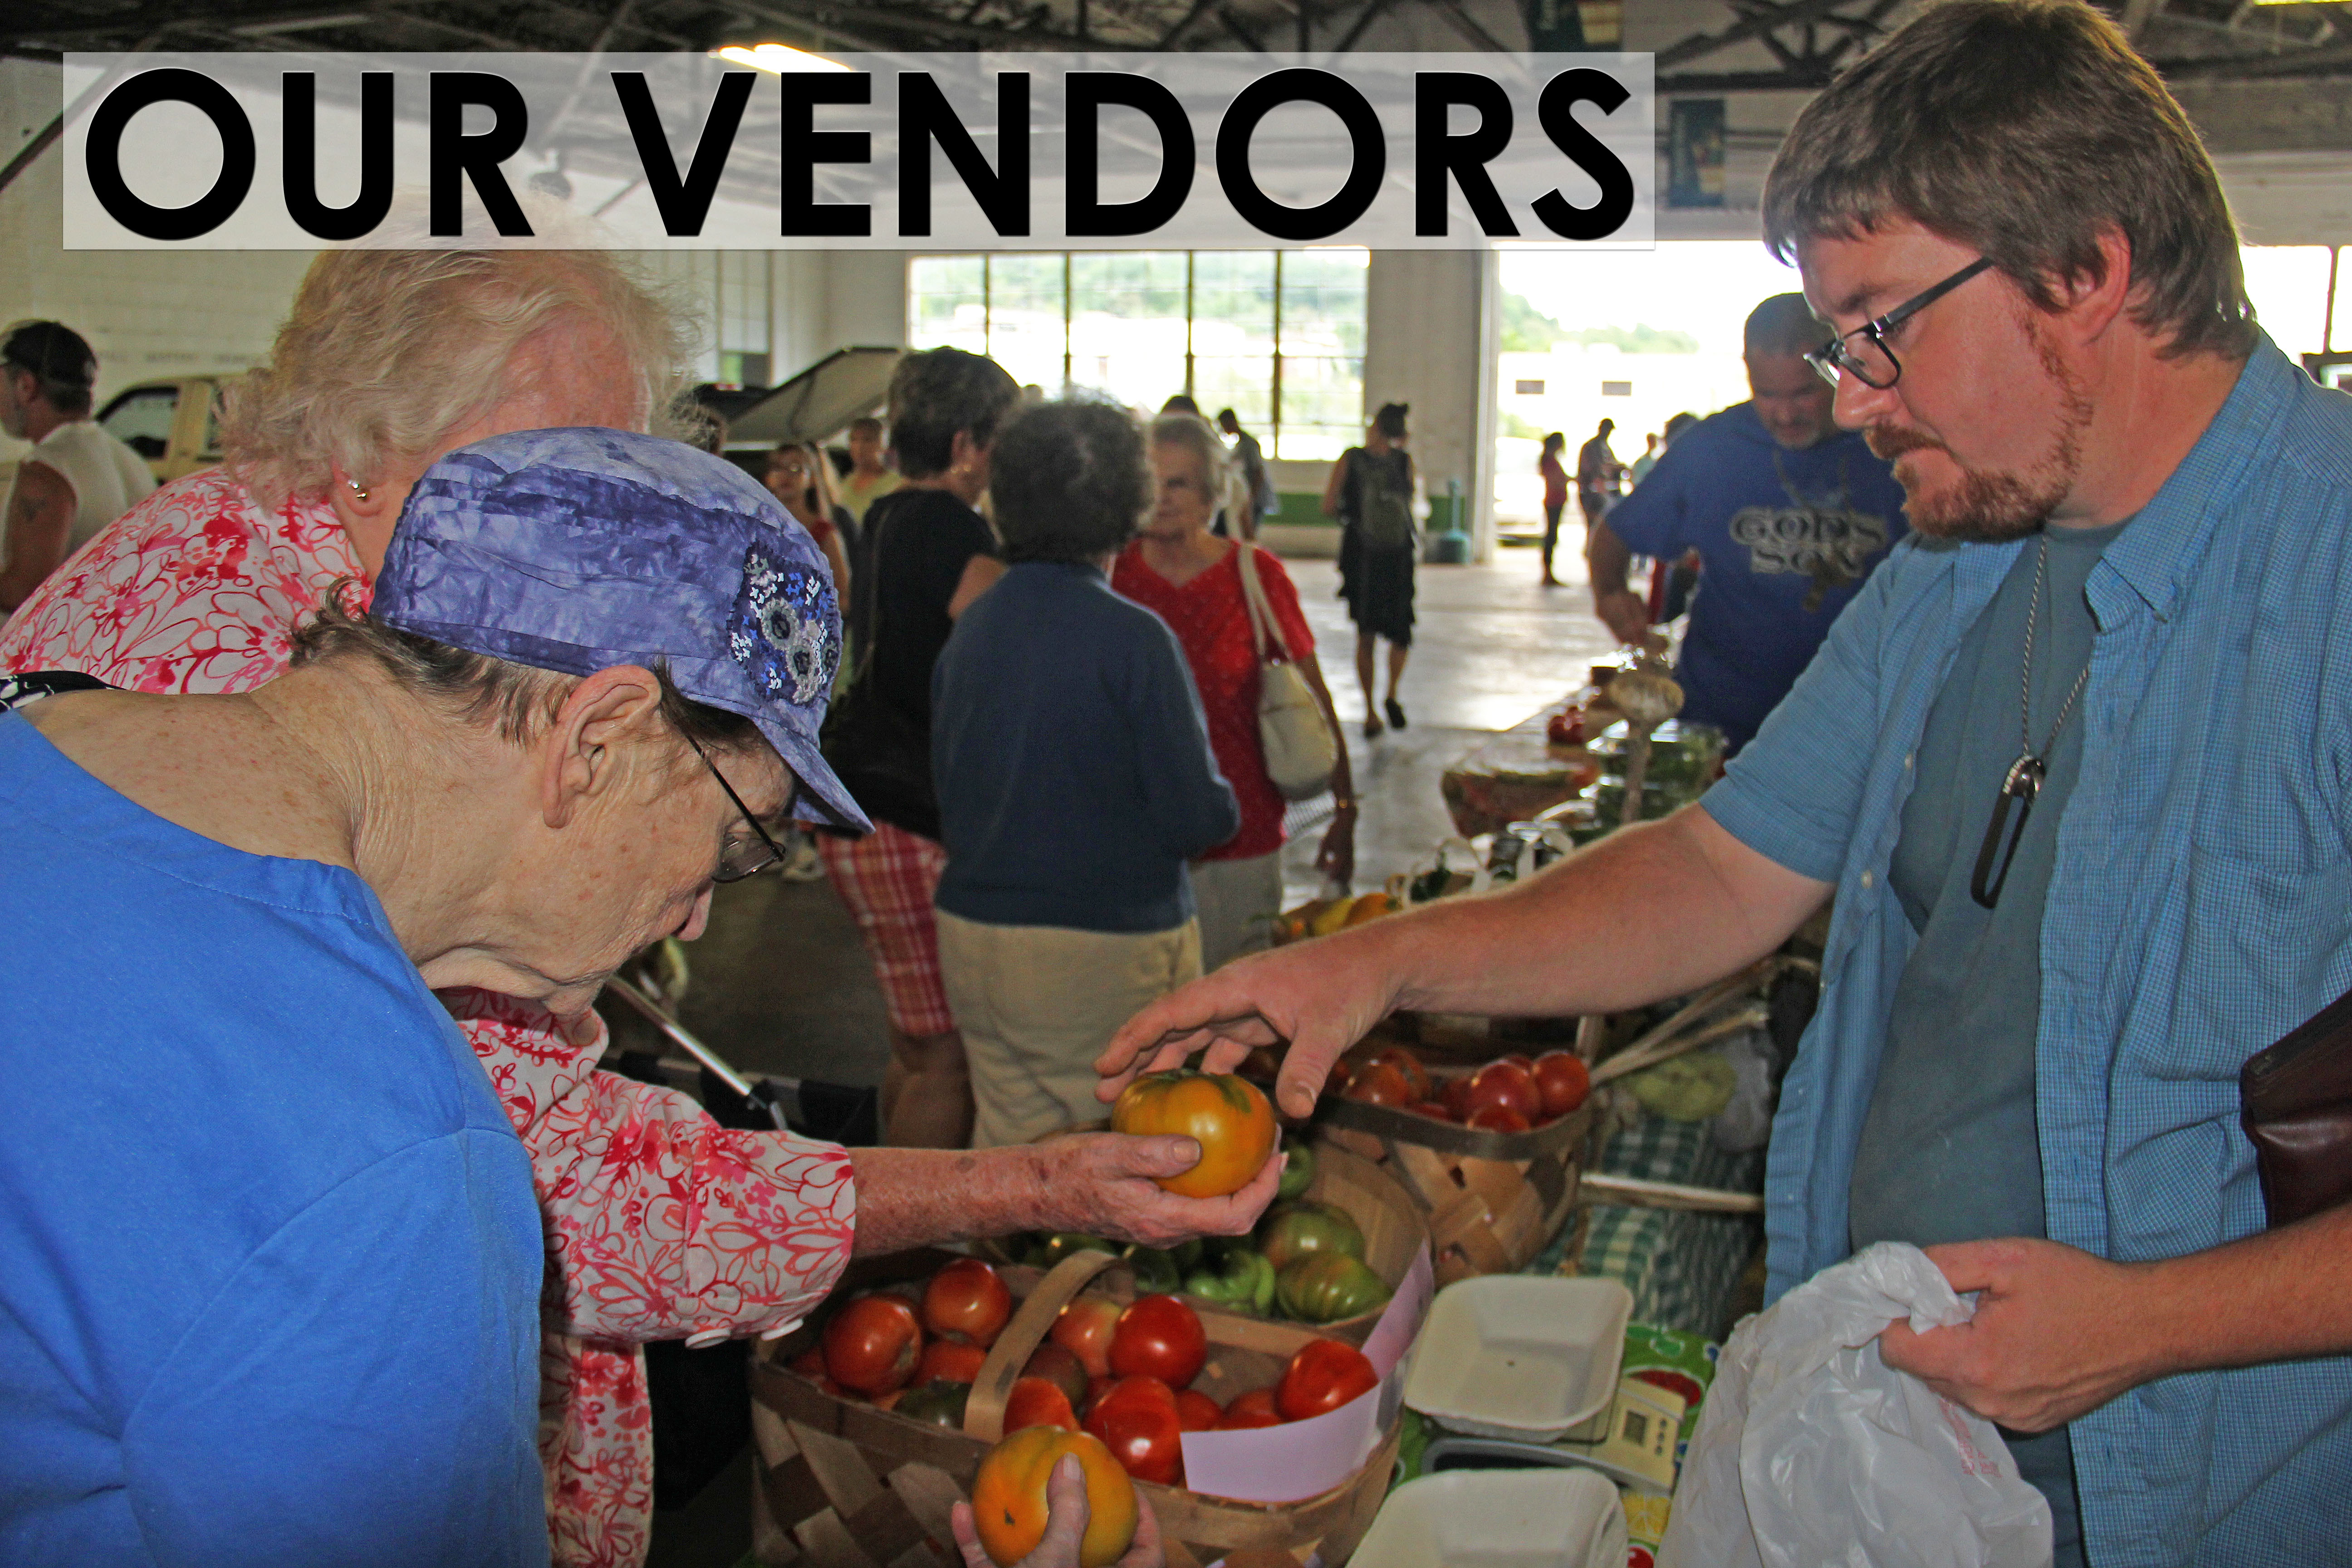 Picture of farmers market vendor and customers